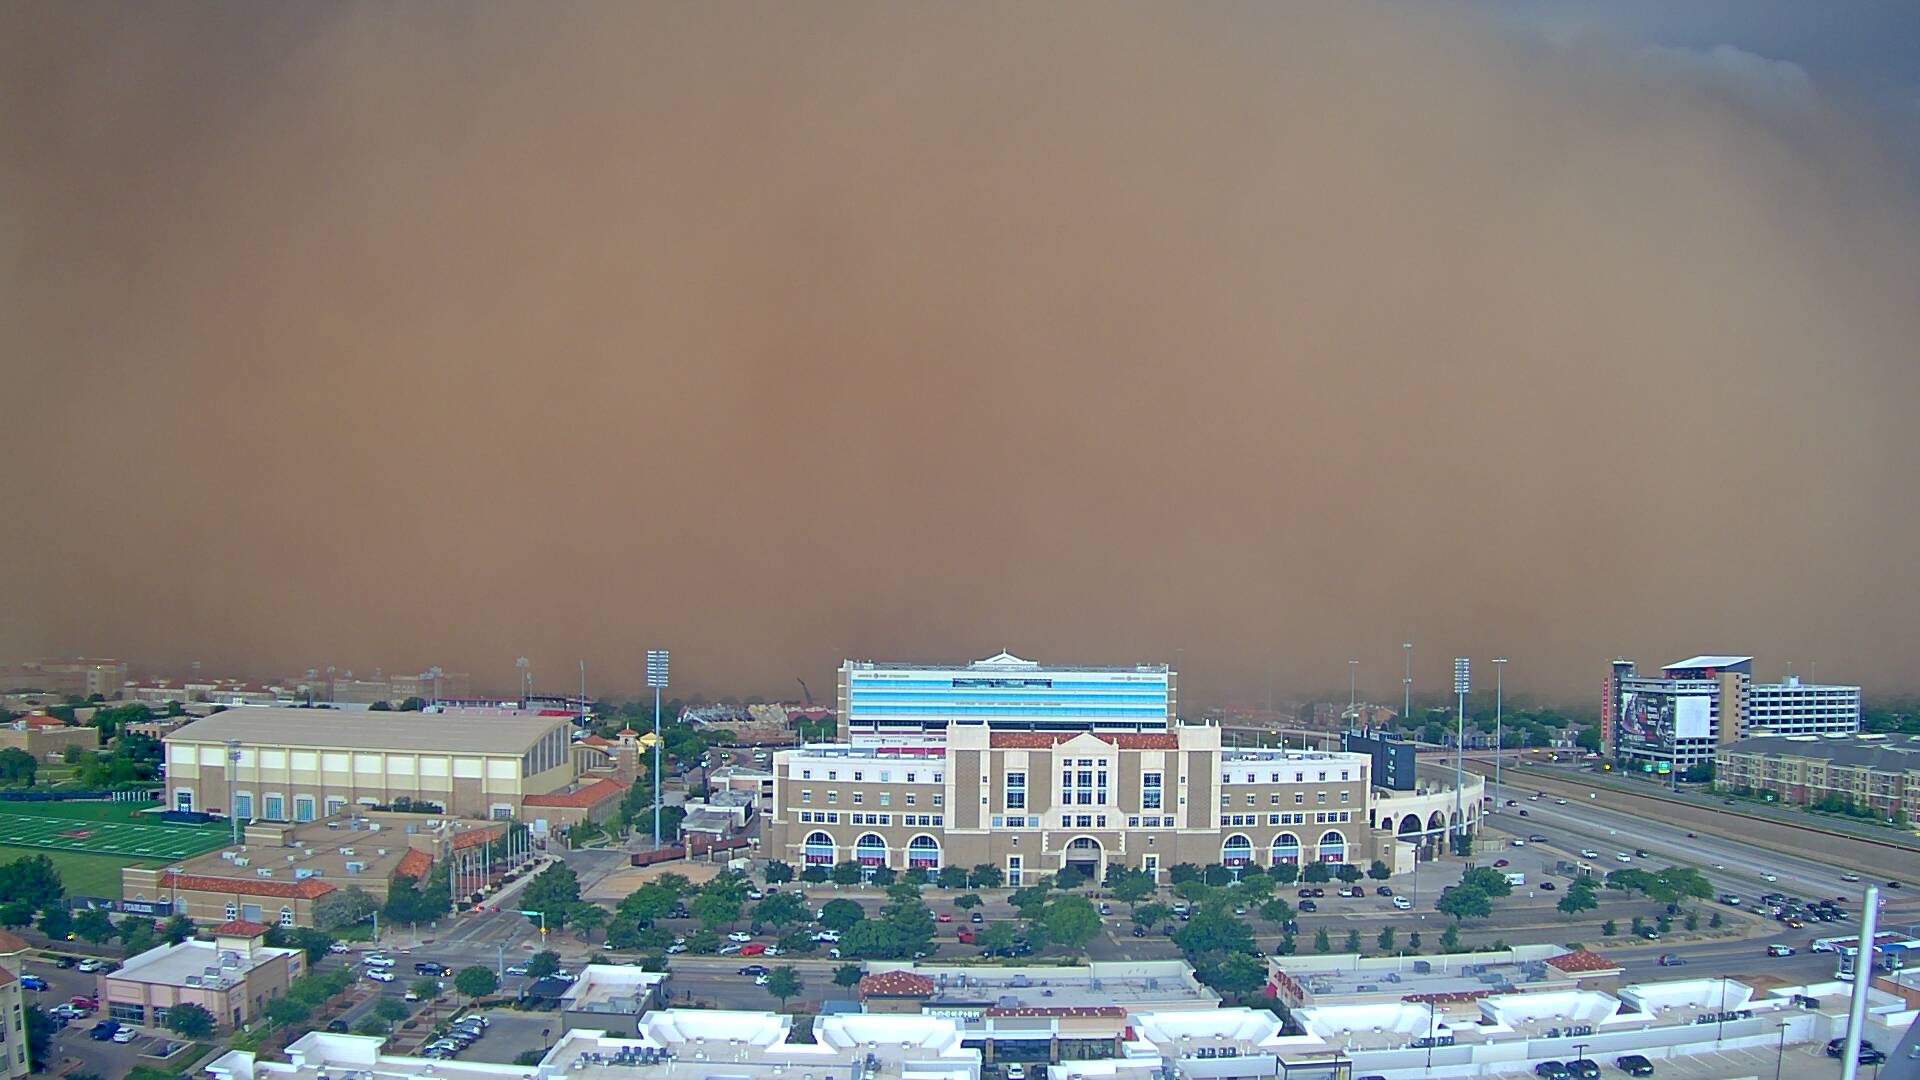 A wall of wind and dust about to engulf Jones AT&T Stadium on the Texas Tech Campus. The picture was taken at 6:13 pm on 5 June 2019. The image is courtesy of KAMC.